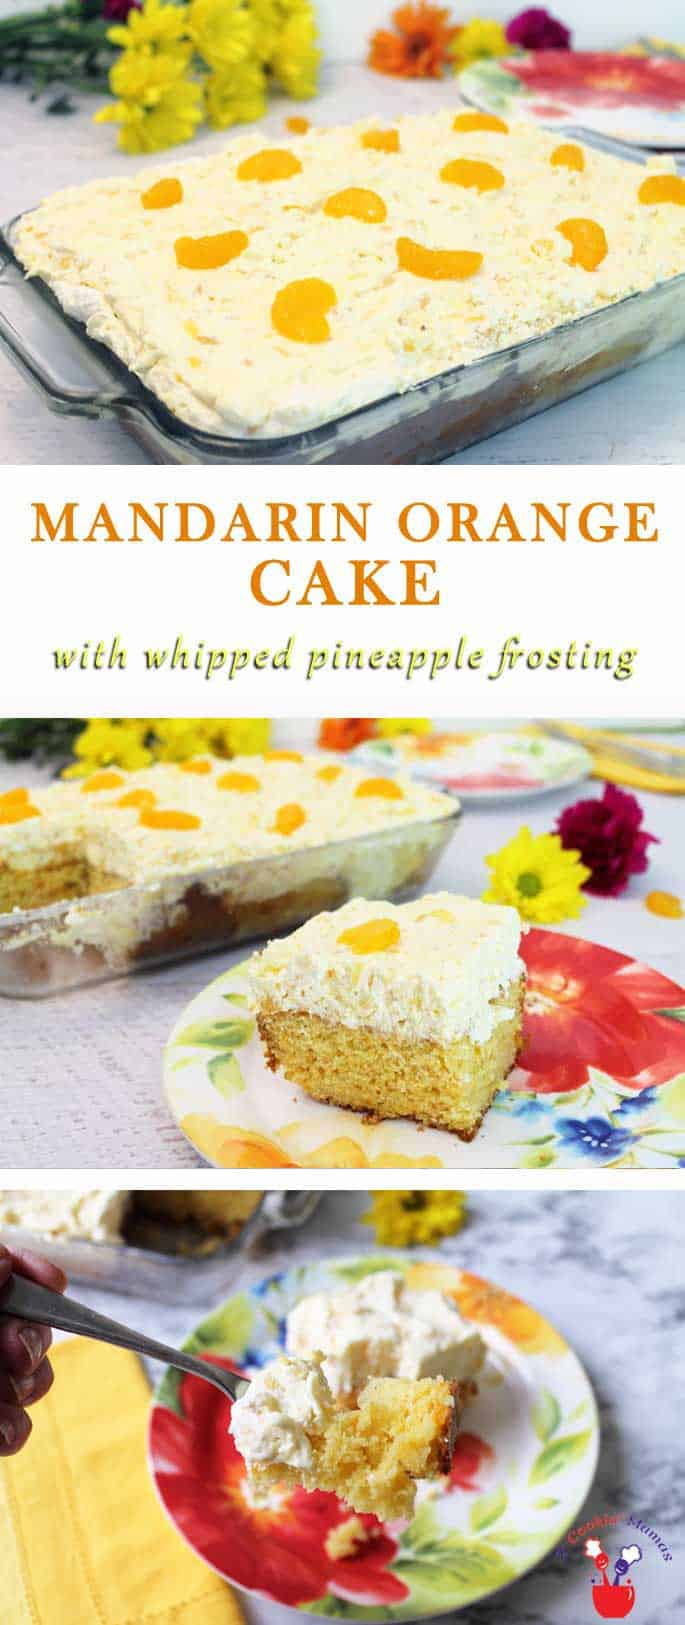 Mandarin Orange Cake | 2 Cookin Mamas Mandarin Orange Cake is the perfect easy summer dessert! Sweet mandarin oranges delicately flavor a boxed cake mix & pineapple Cool Whip adds a sweet touch.